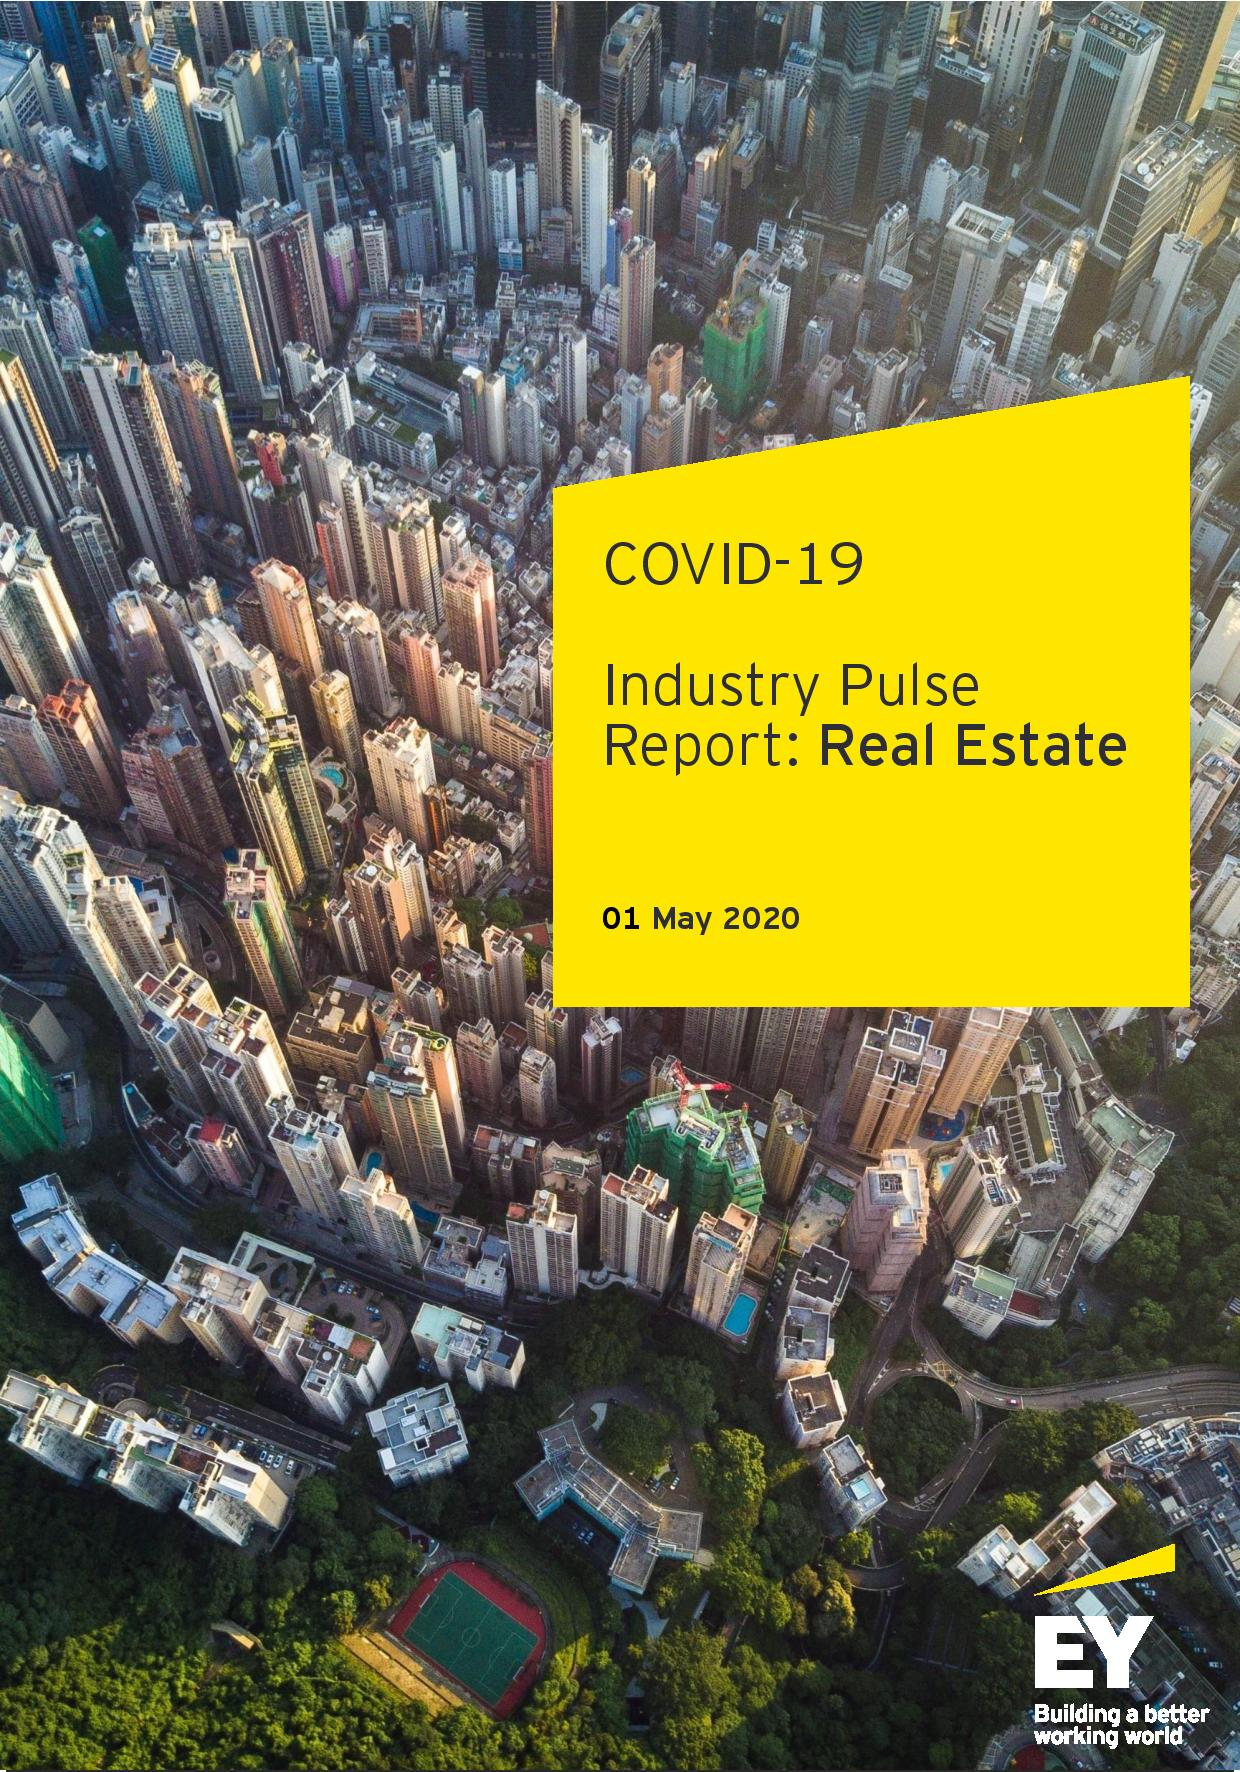 EY Cyprus: COVID-19 Industry Pulse Report: Real Estate